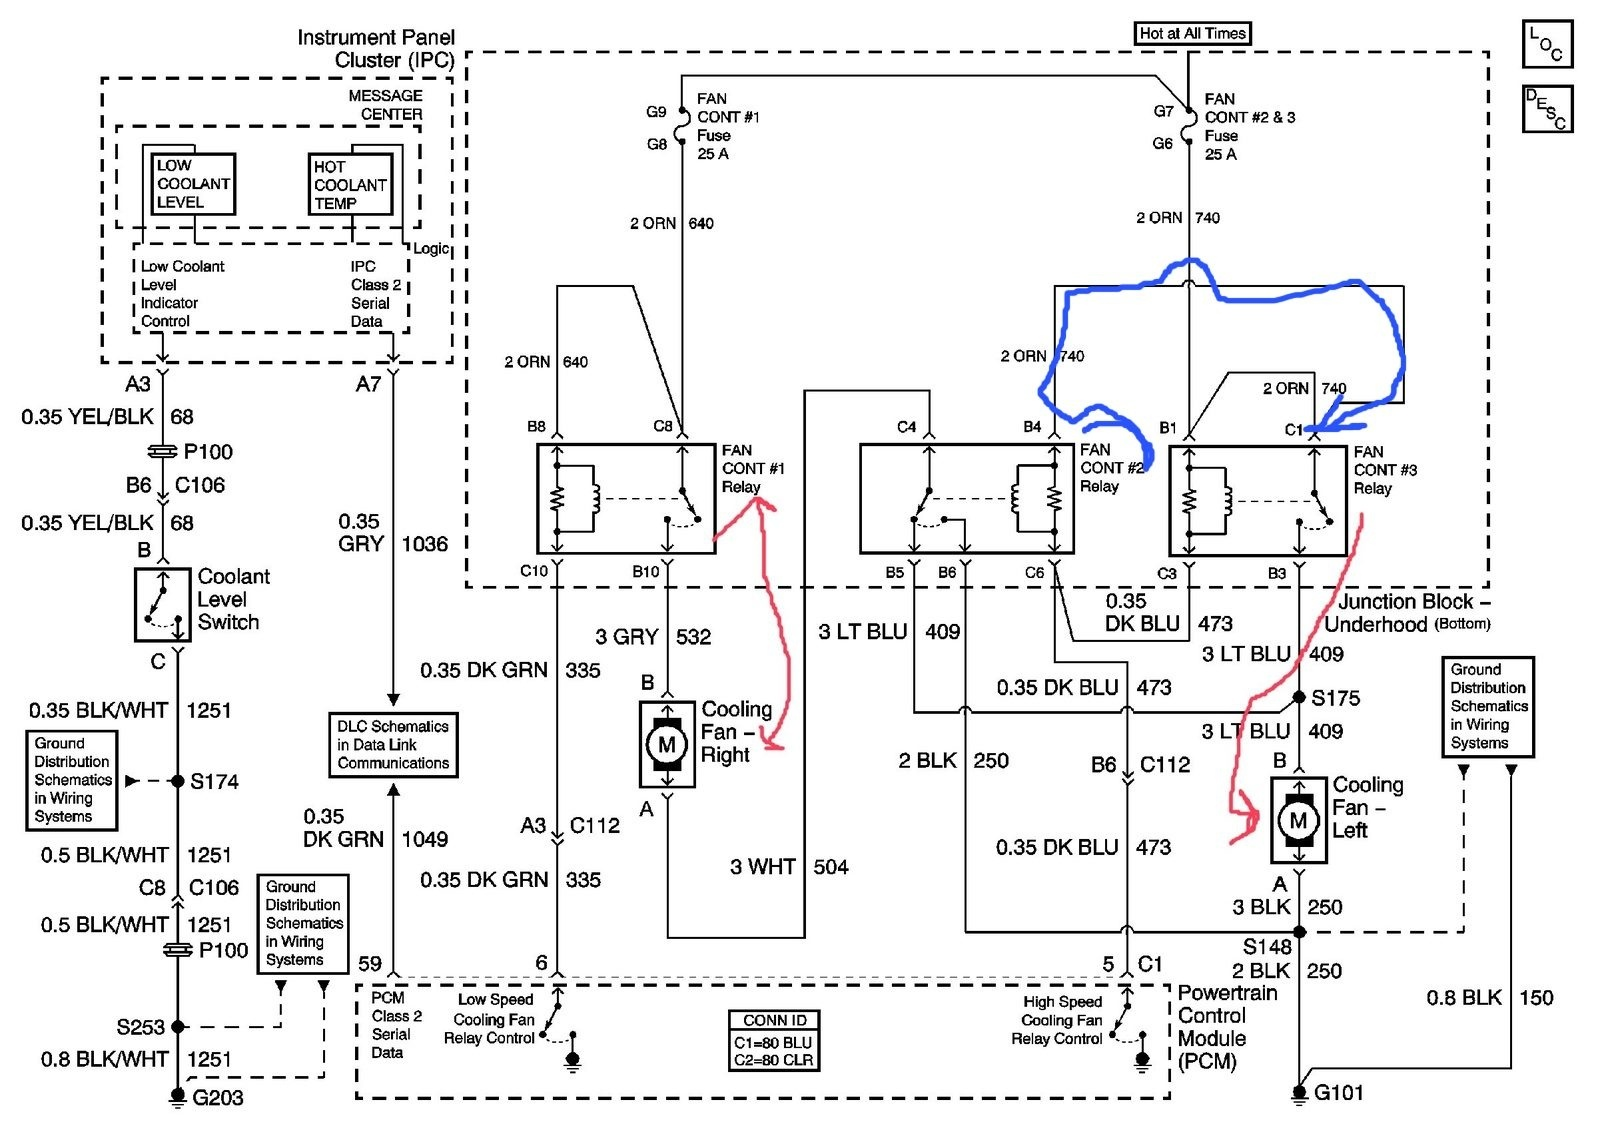 2007 dodge charger heater control wiring diagram with Discussion T39799 Ds653133 on 1990 Toyota Supra Electrical Wiring Diagram likewise Discussion T39799 ds653133 additionally 2xrpk Dodge Grand Caravan 03 Heat Ac Work Rear Will as well 3sbld 2005 300c Tring Located Fan Control together with In A 2010 Nissan Xterra Thermostat Location.